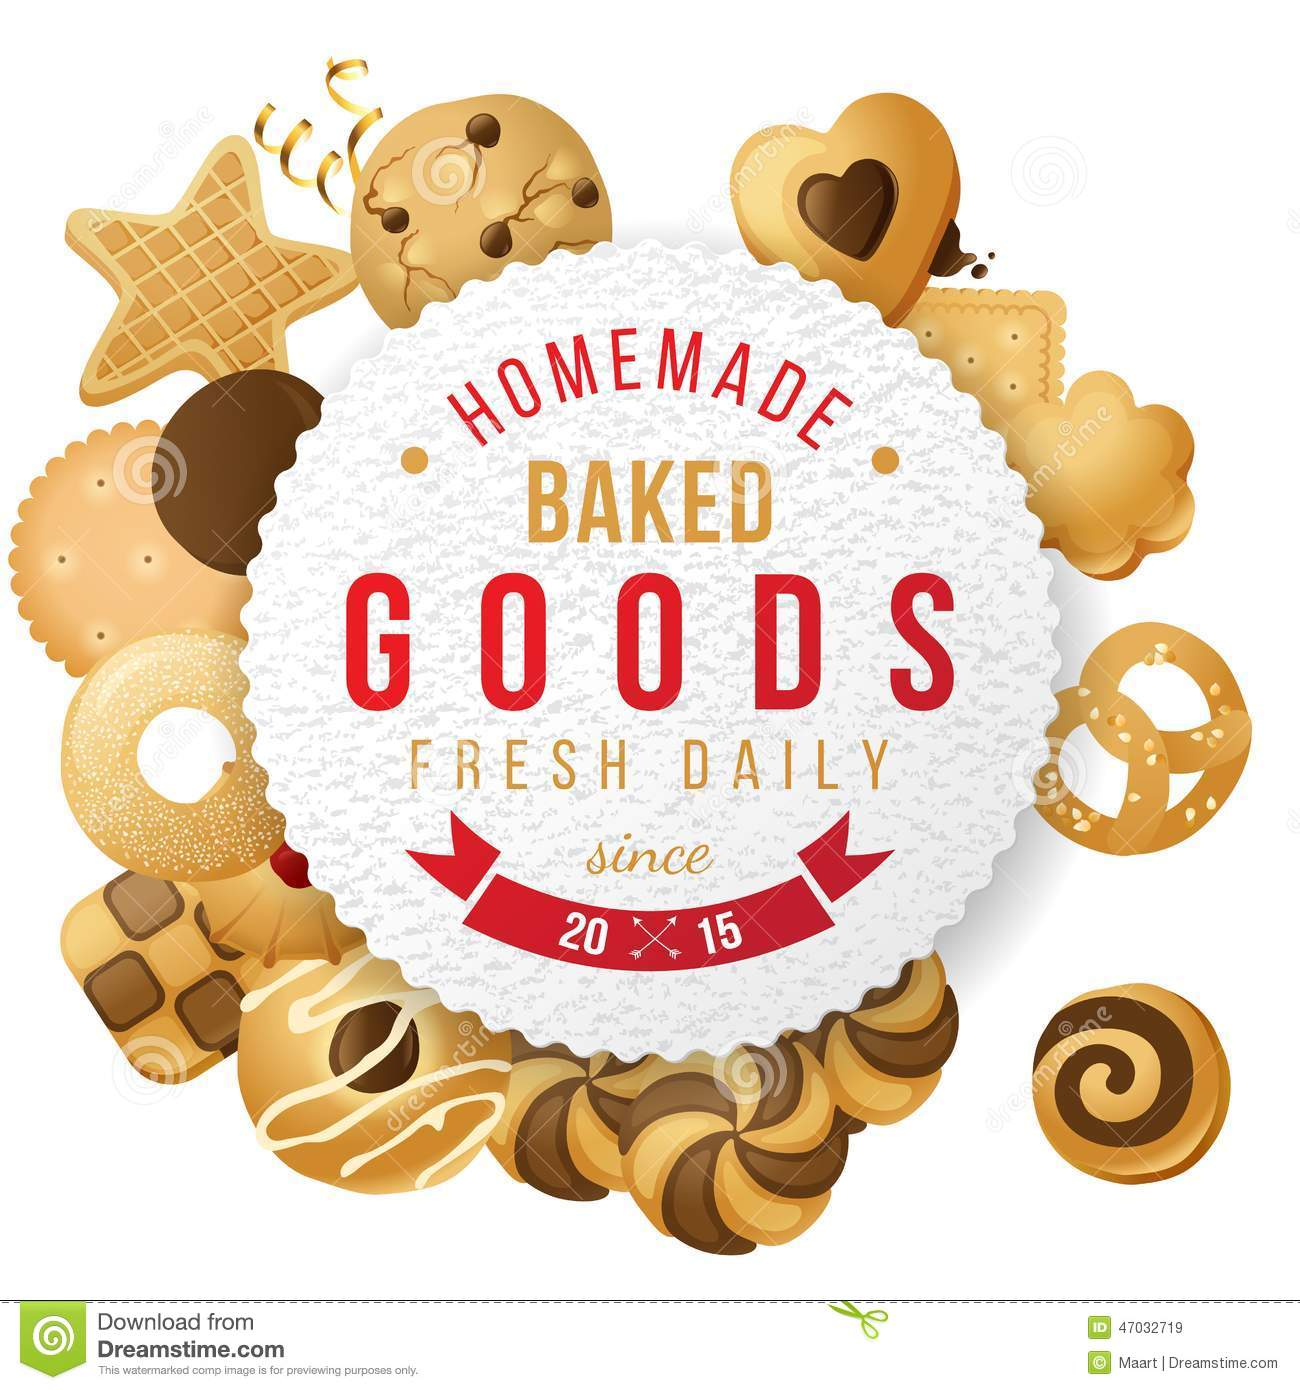 clip art images baked goods - photo #28